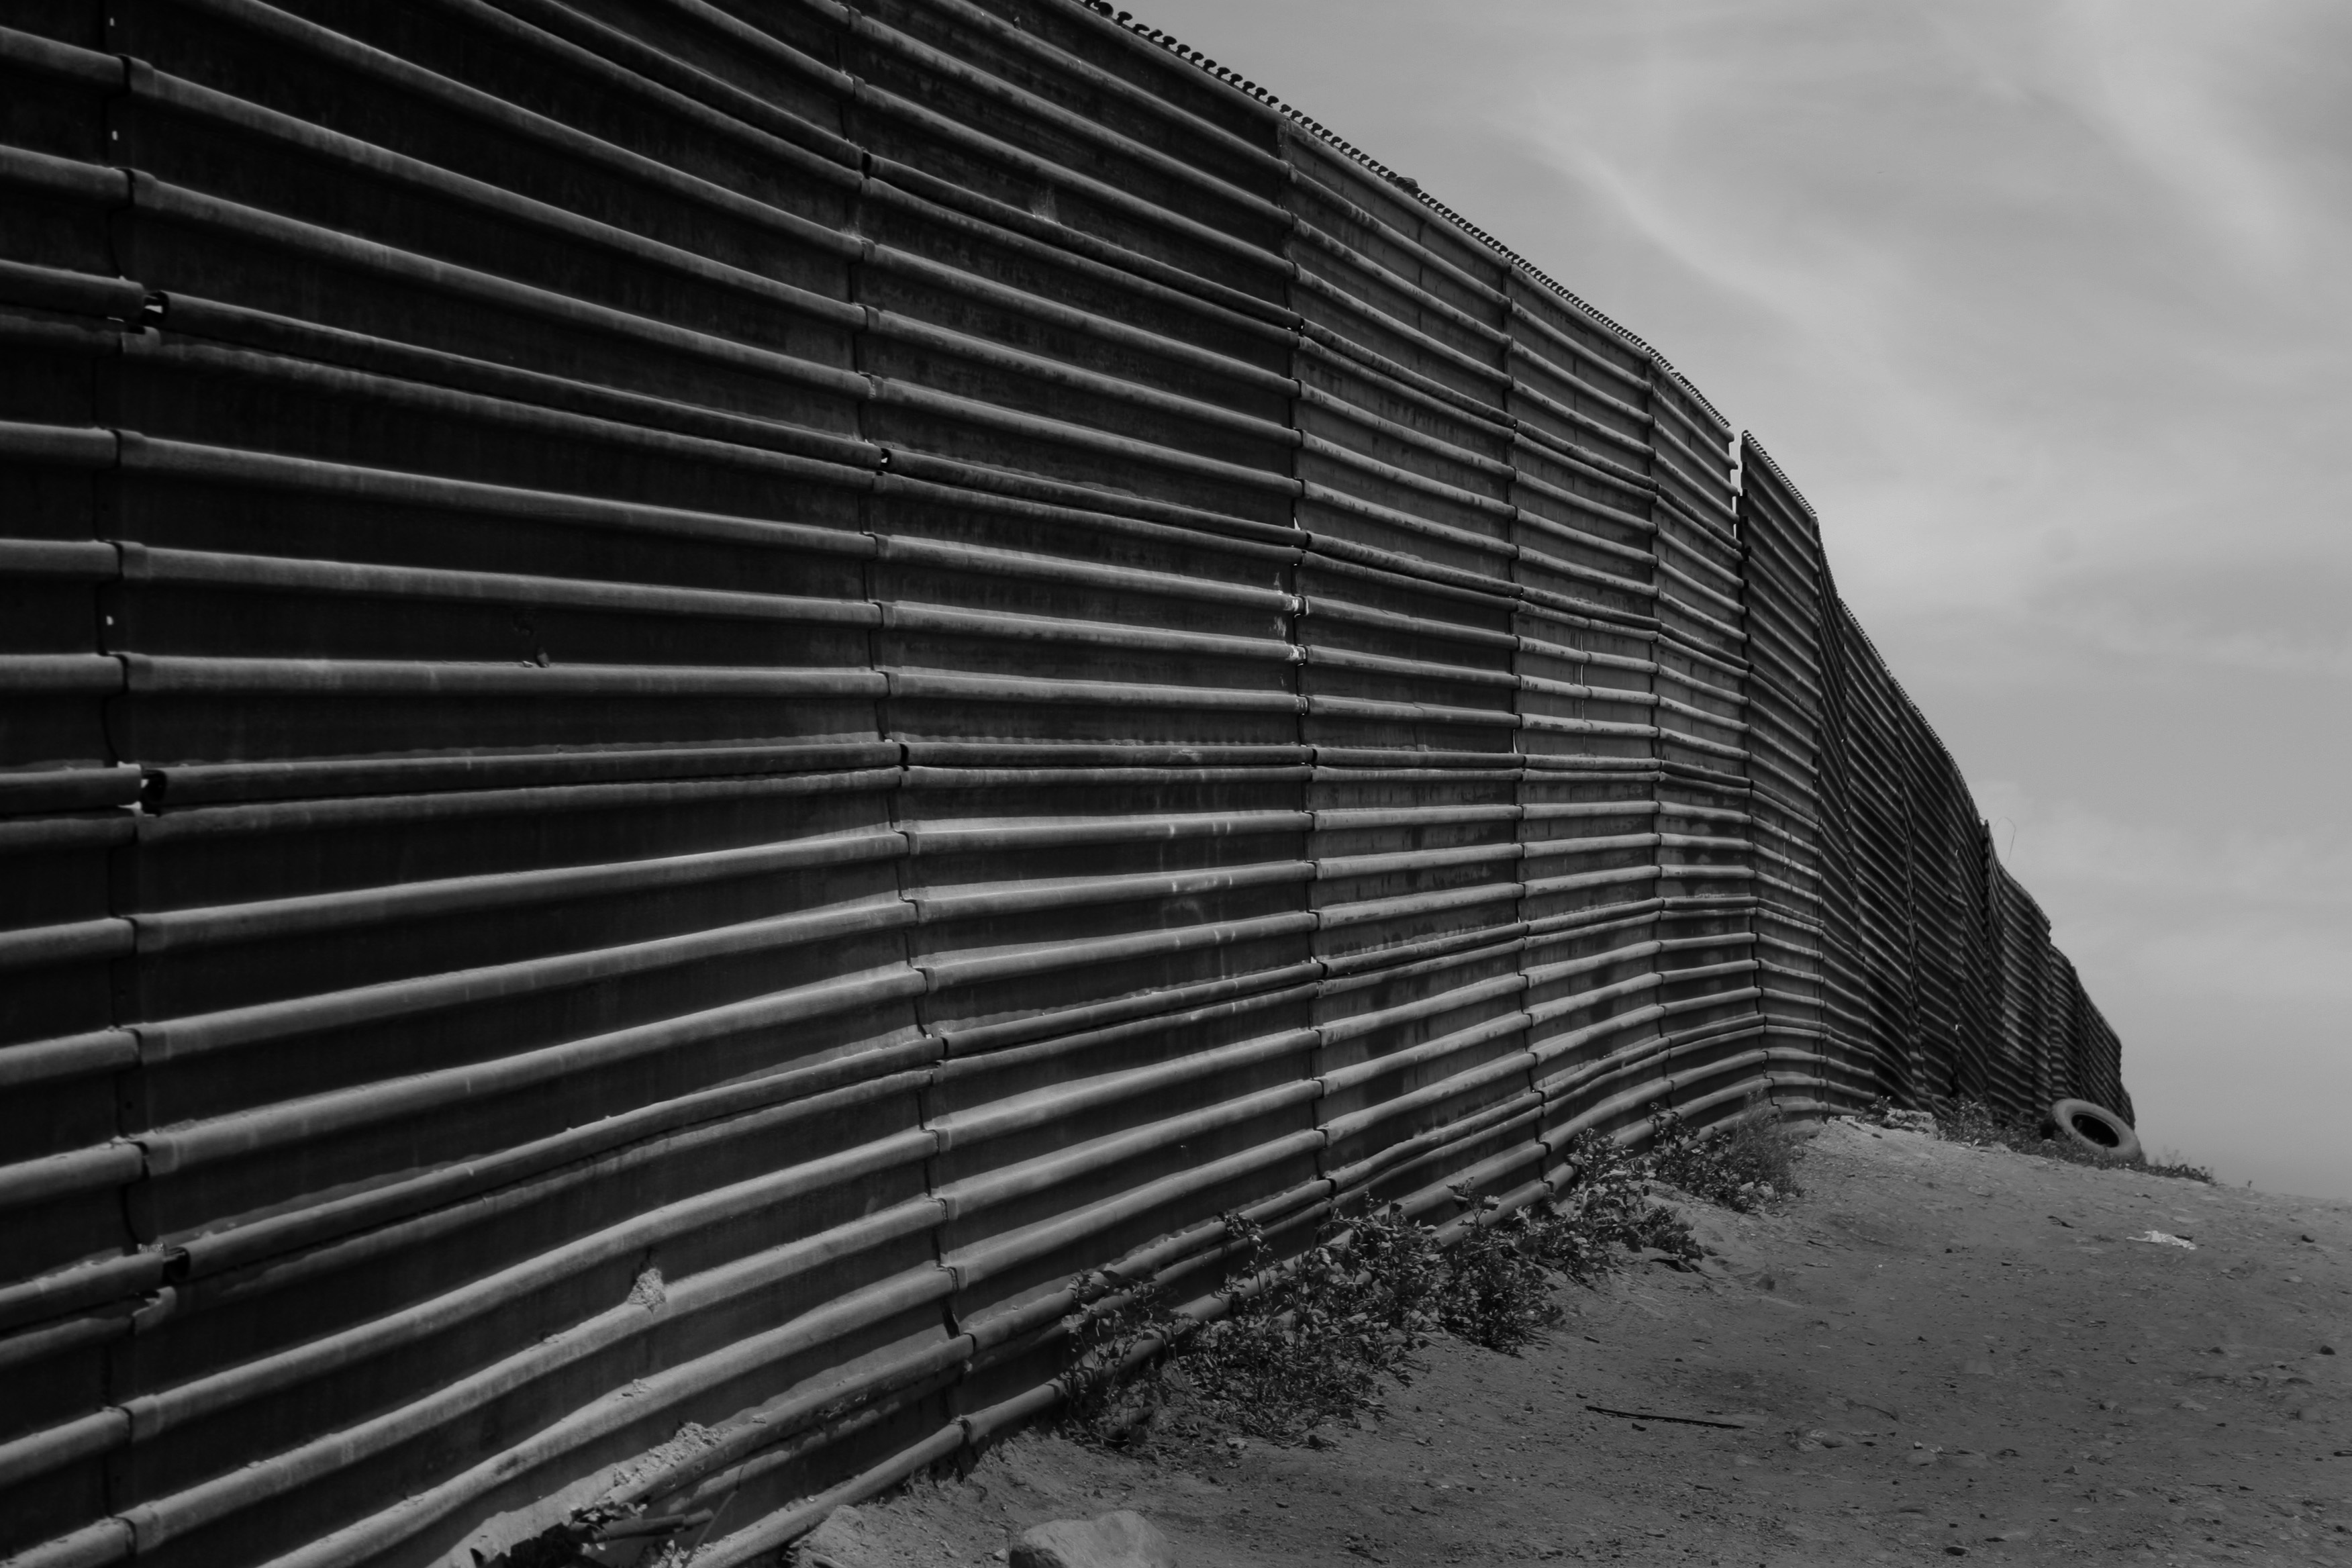 Us-mexico_border_at_Tijuana